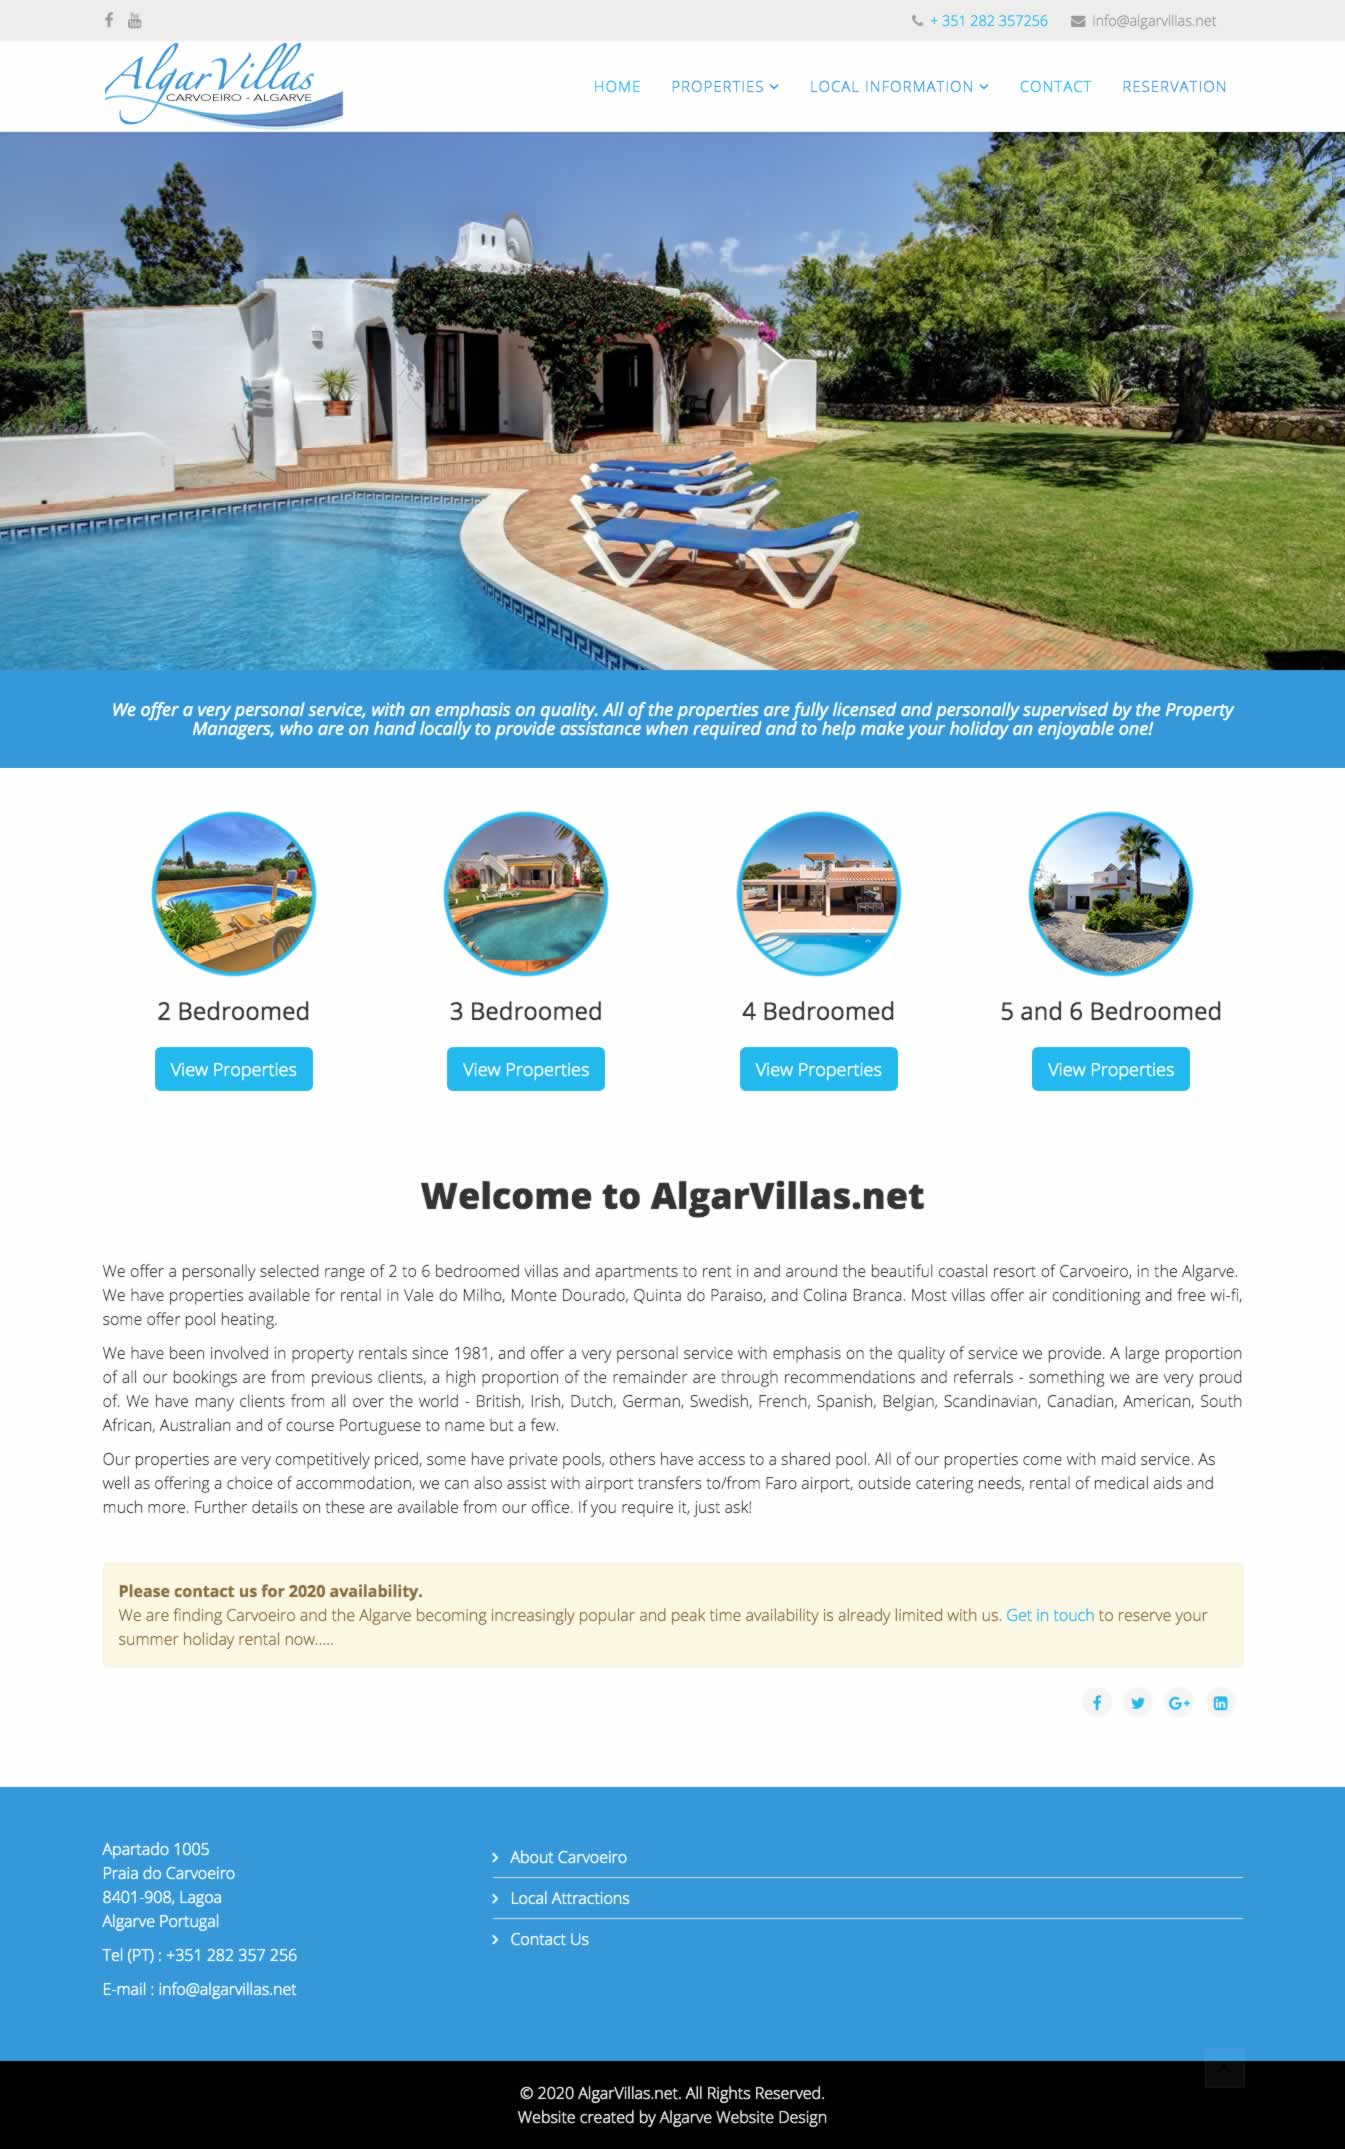 algarvillas.net